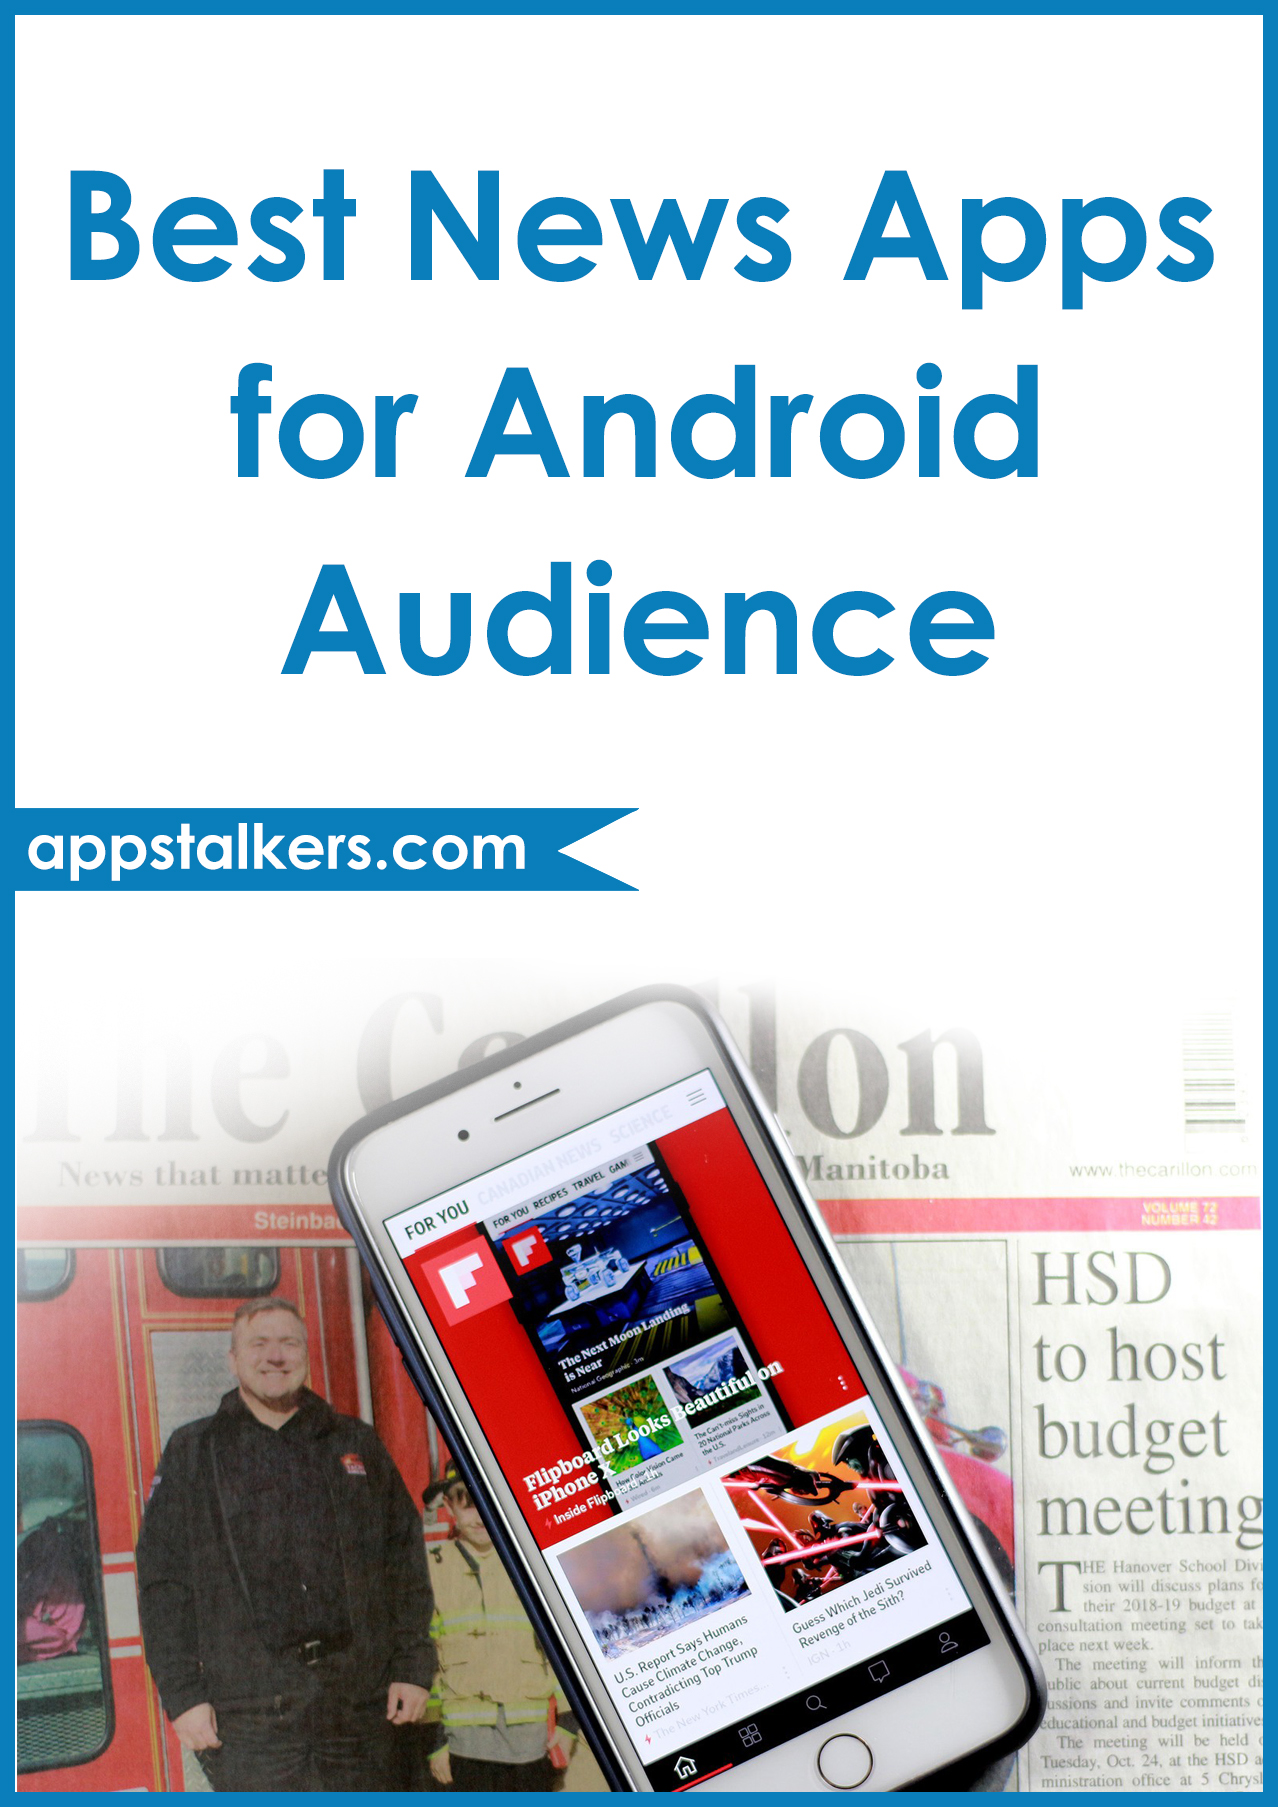 Best News Apps for Android Audience Pinterest